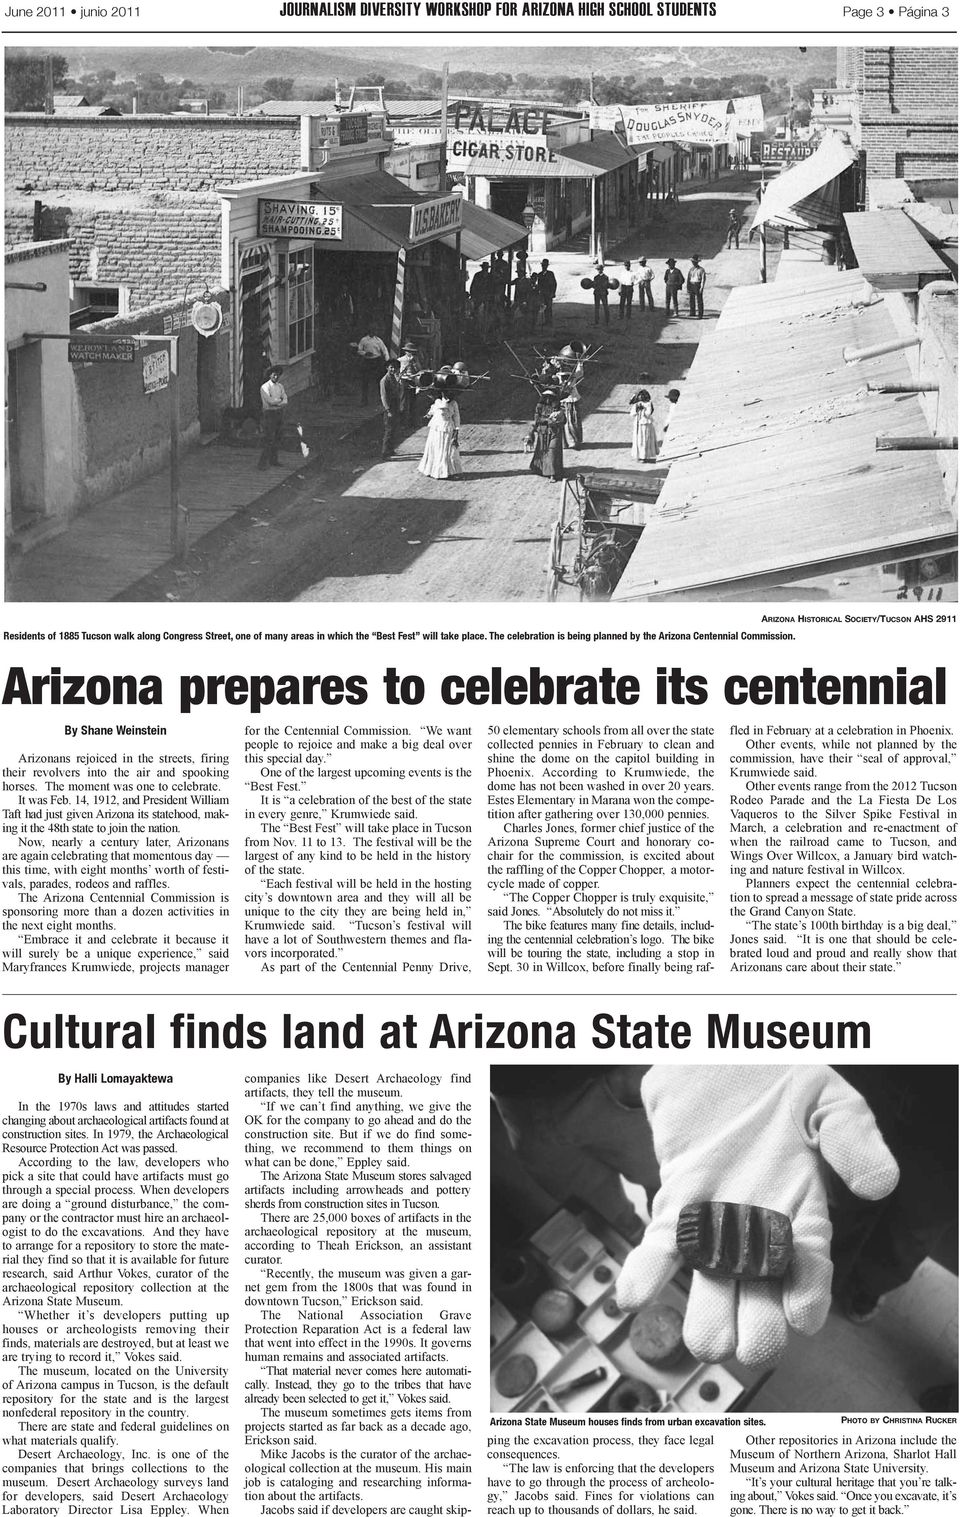 Arizona prepares to celebrate its centennial By Shane Weinstein Arizonans rejoiced in the streets, firing their revolvers into the air and spooking horses. The moment was one to celebrate. It was Feb.